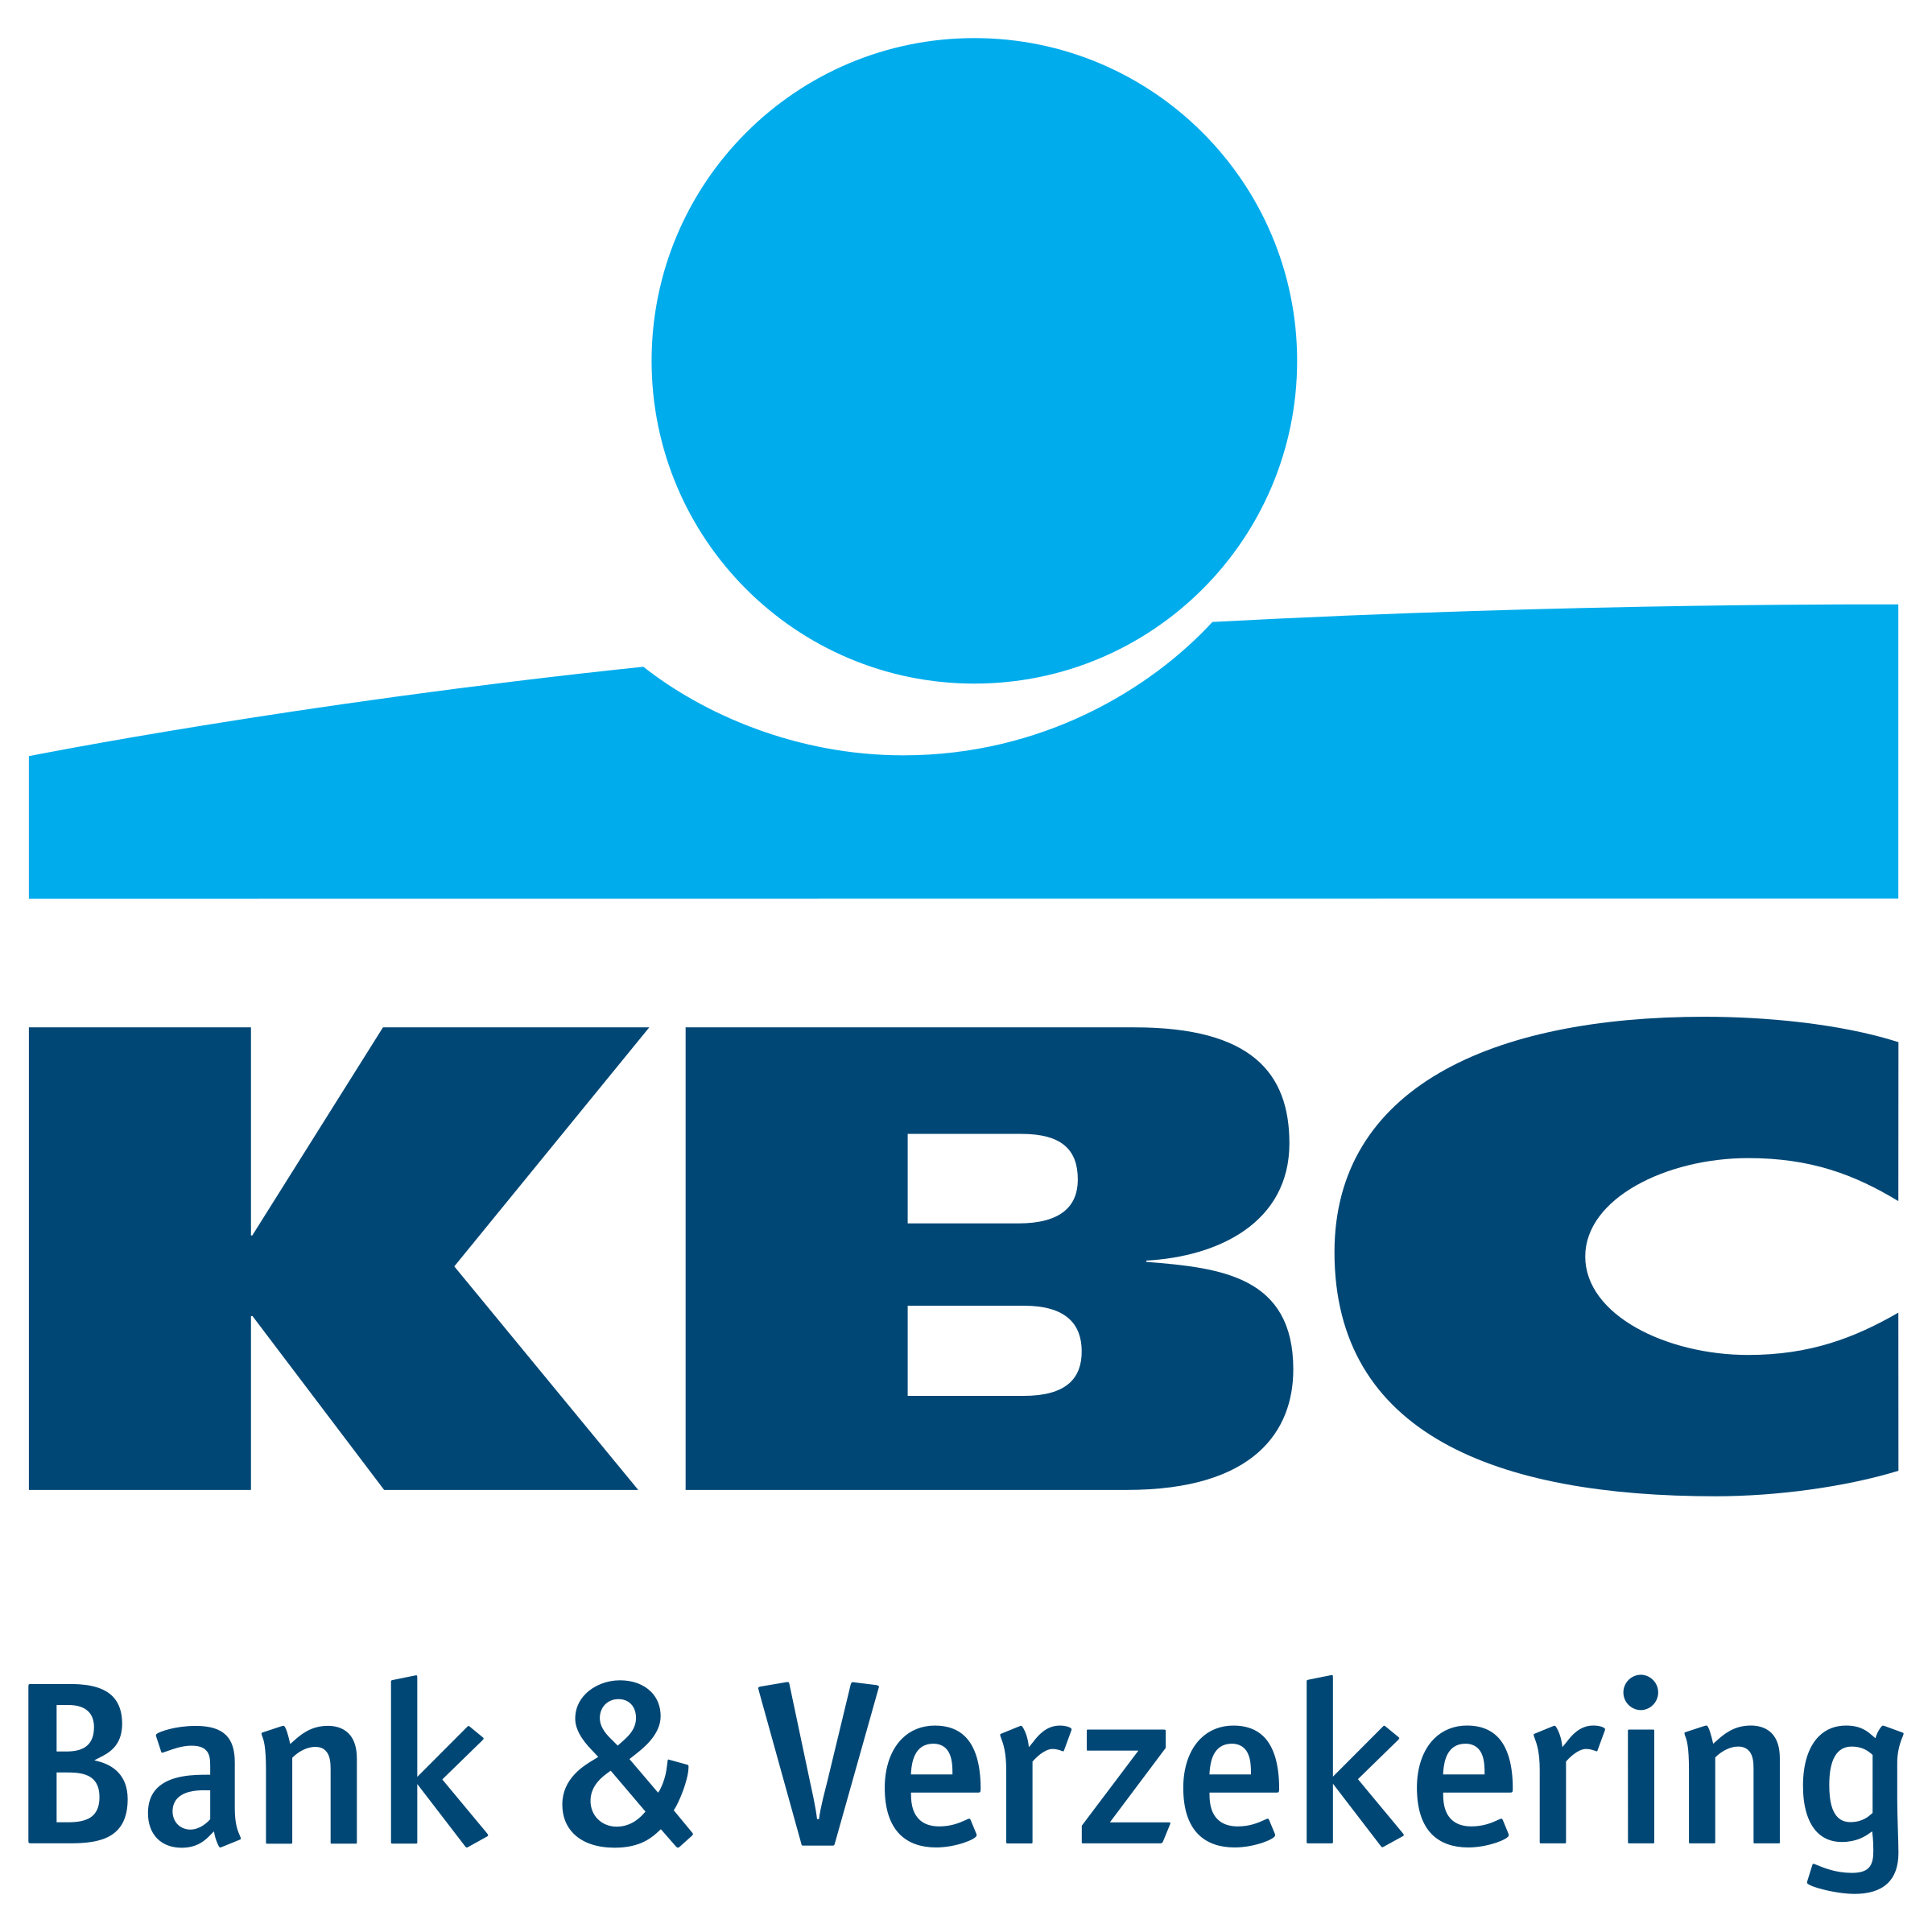 Kbc touch download free